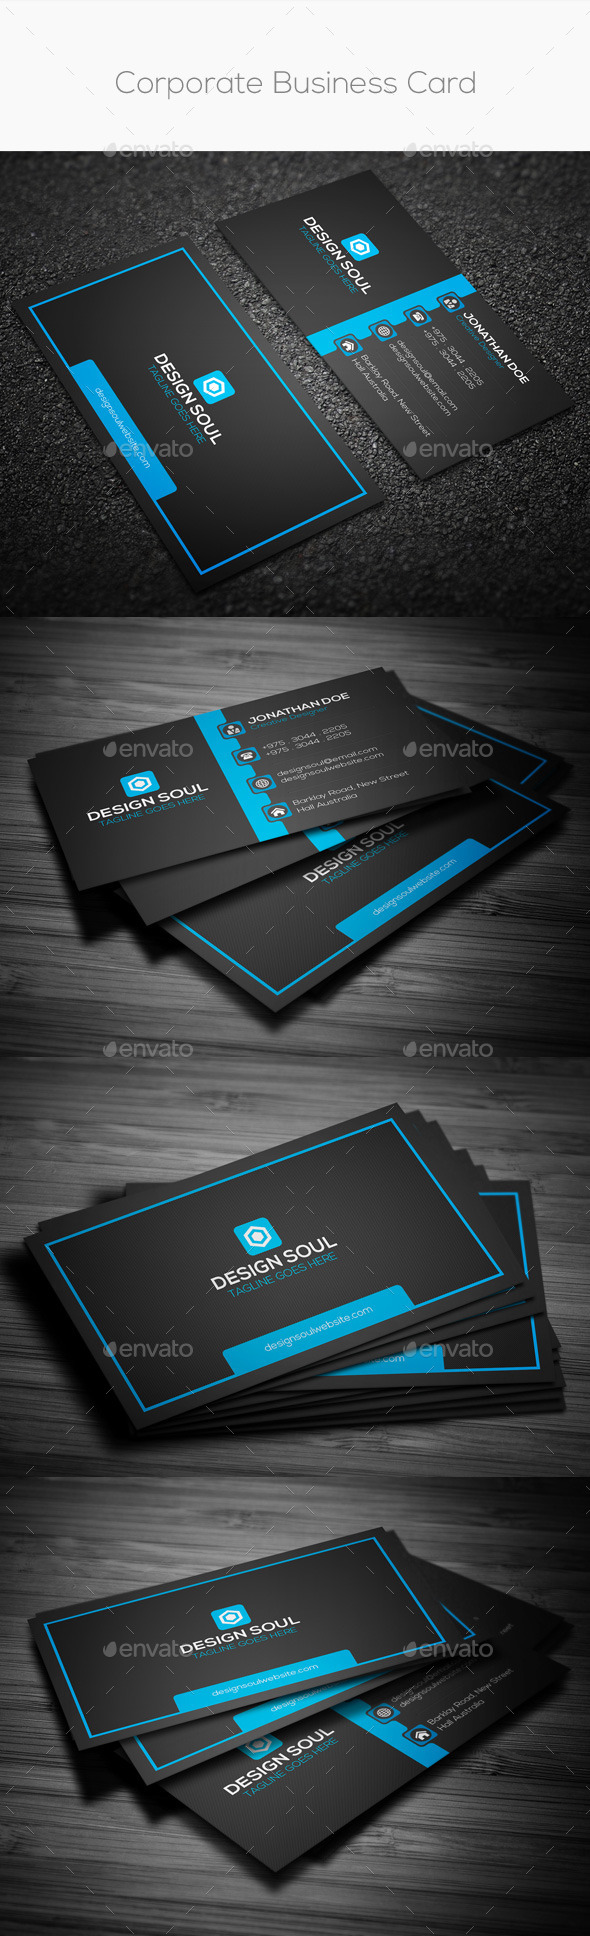 GraphicRiver Corporate Business Card 8826795